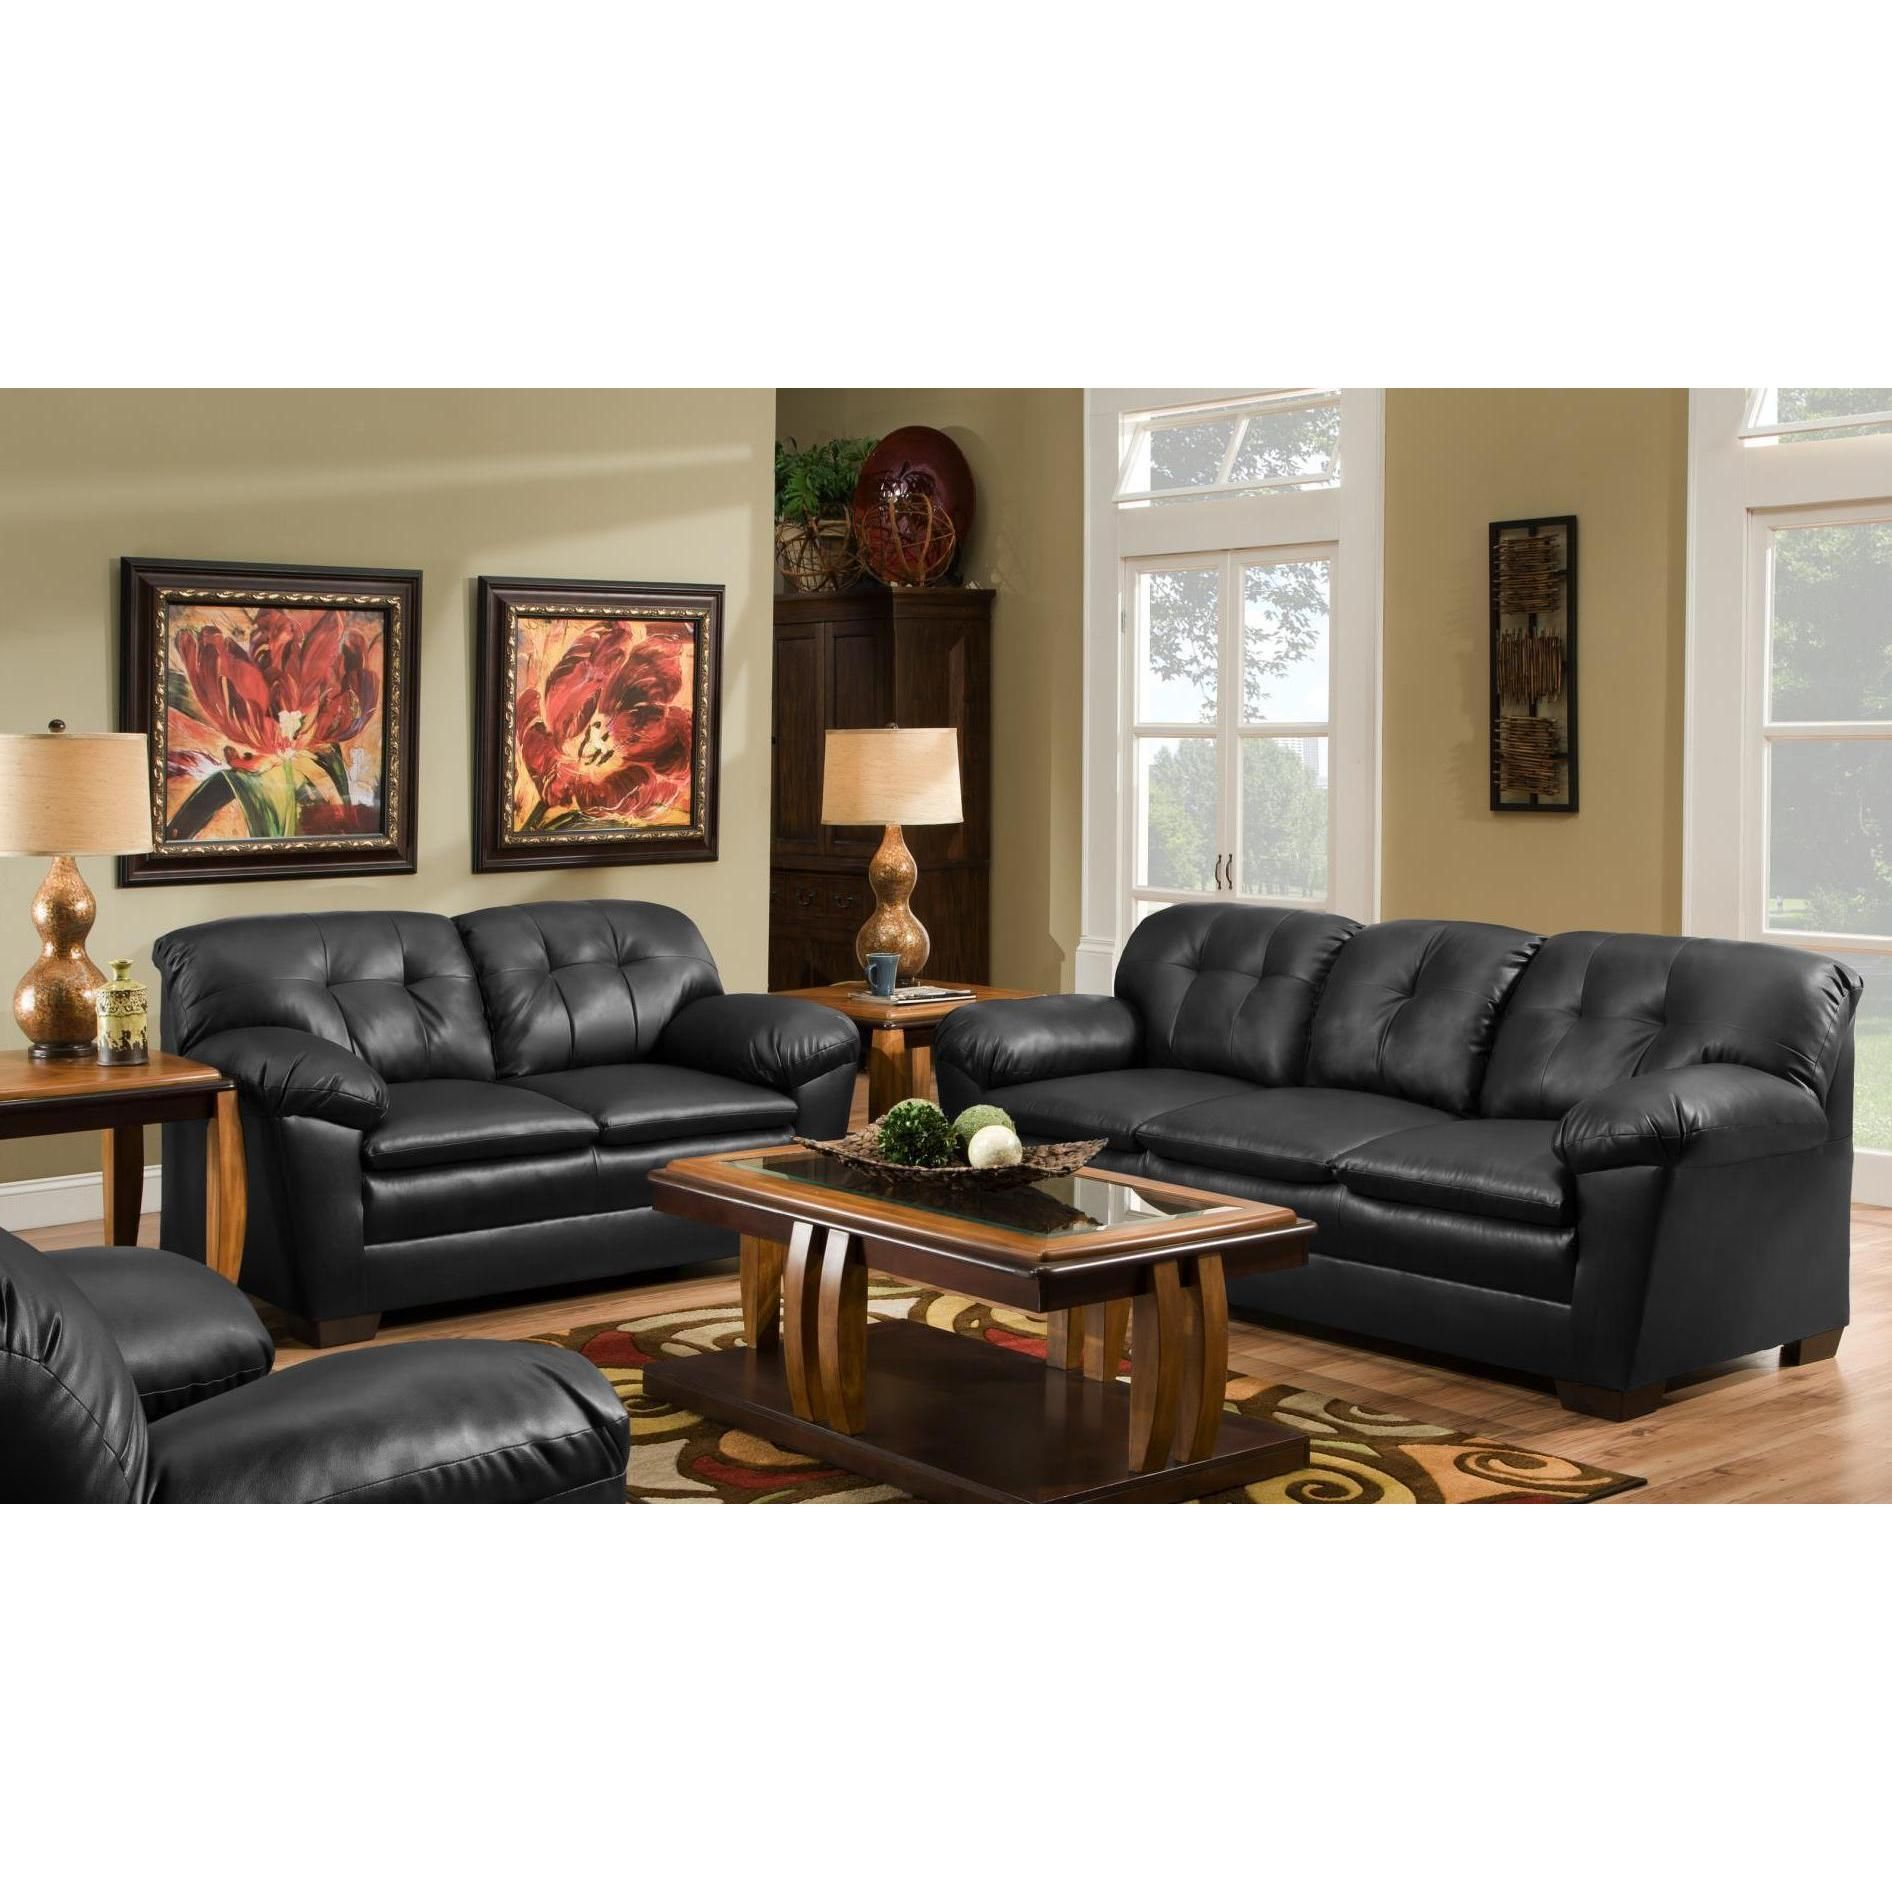 Fine Sofa Trendz Cole Black Faux Leather Sofa And Loveseat Set Pabps2019 Chair Design Images Pabps2019Com